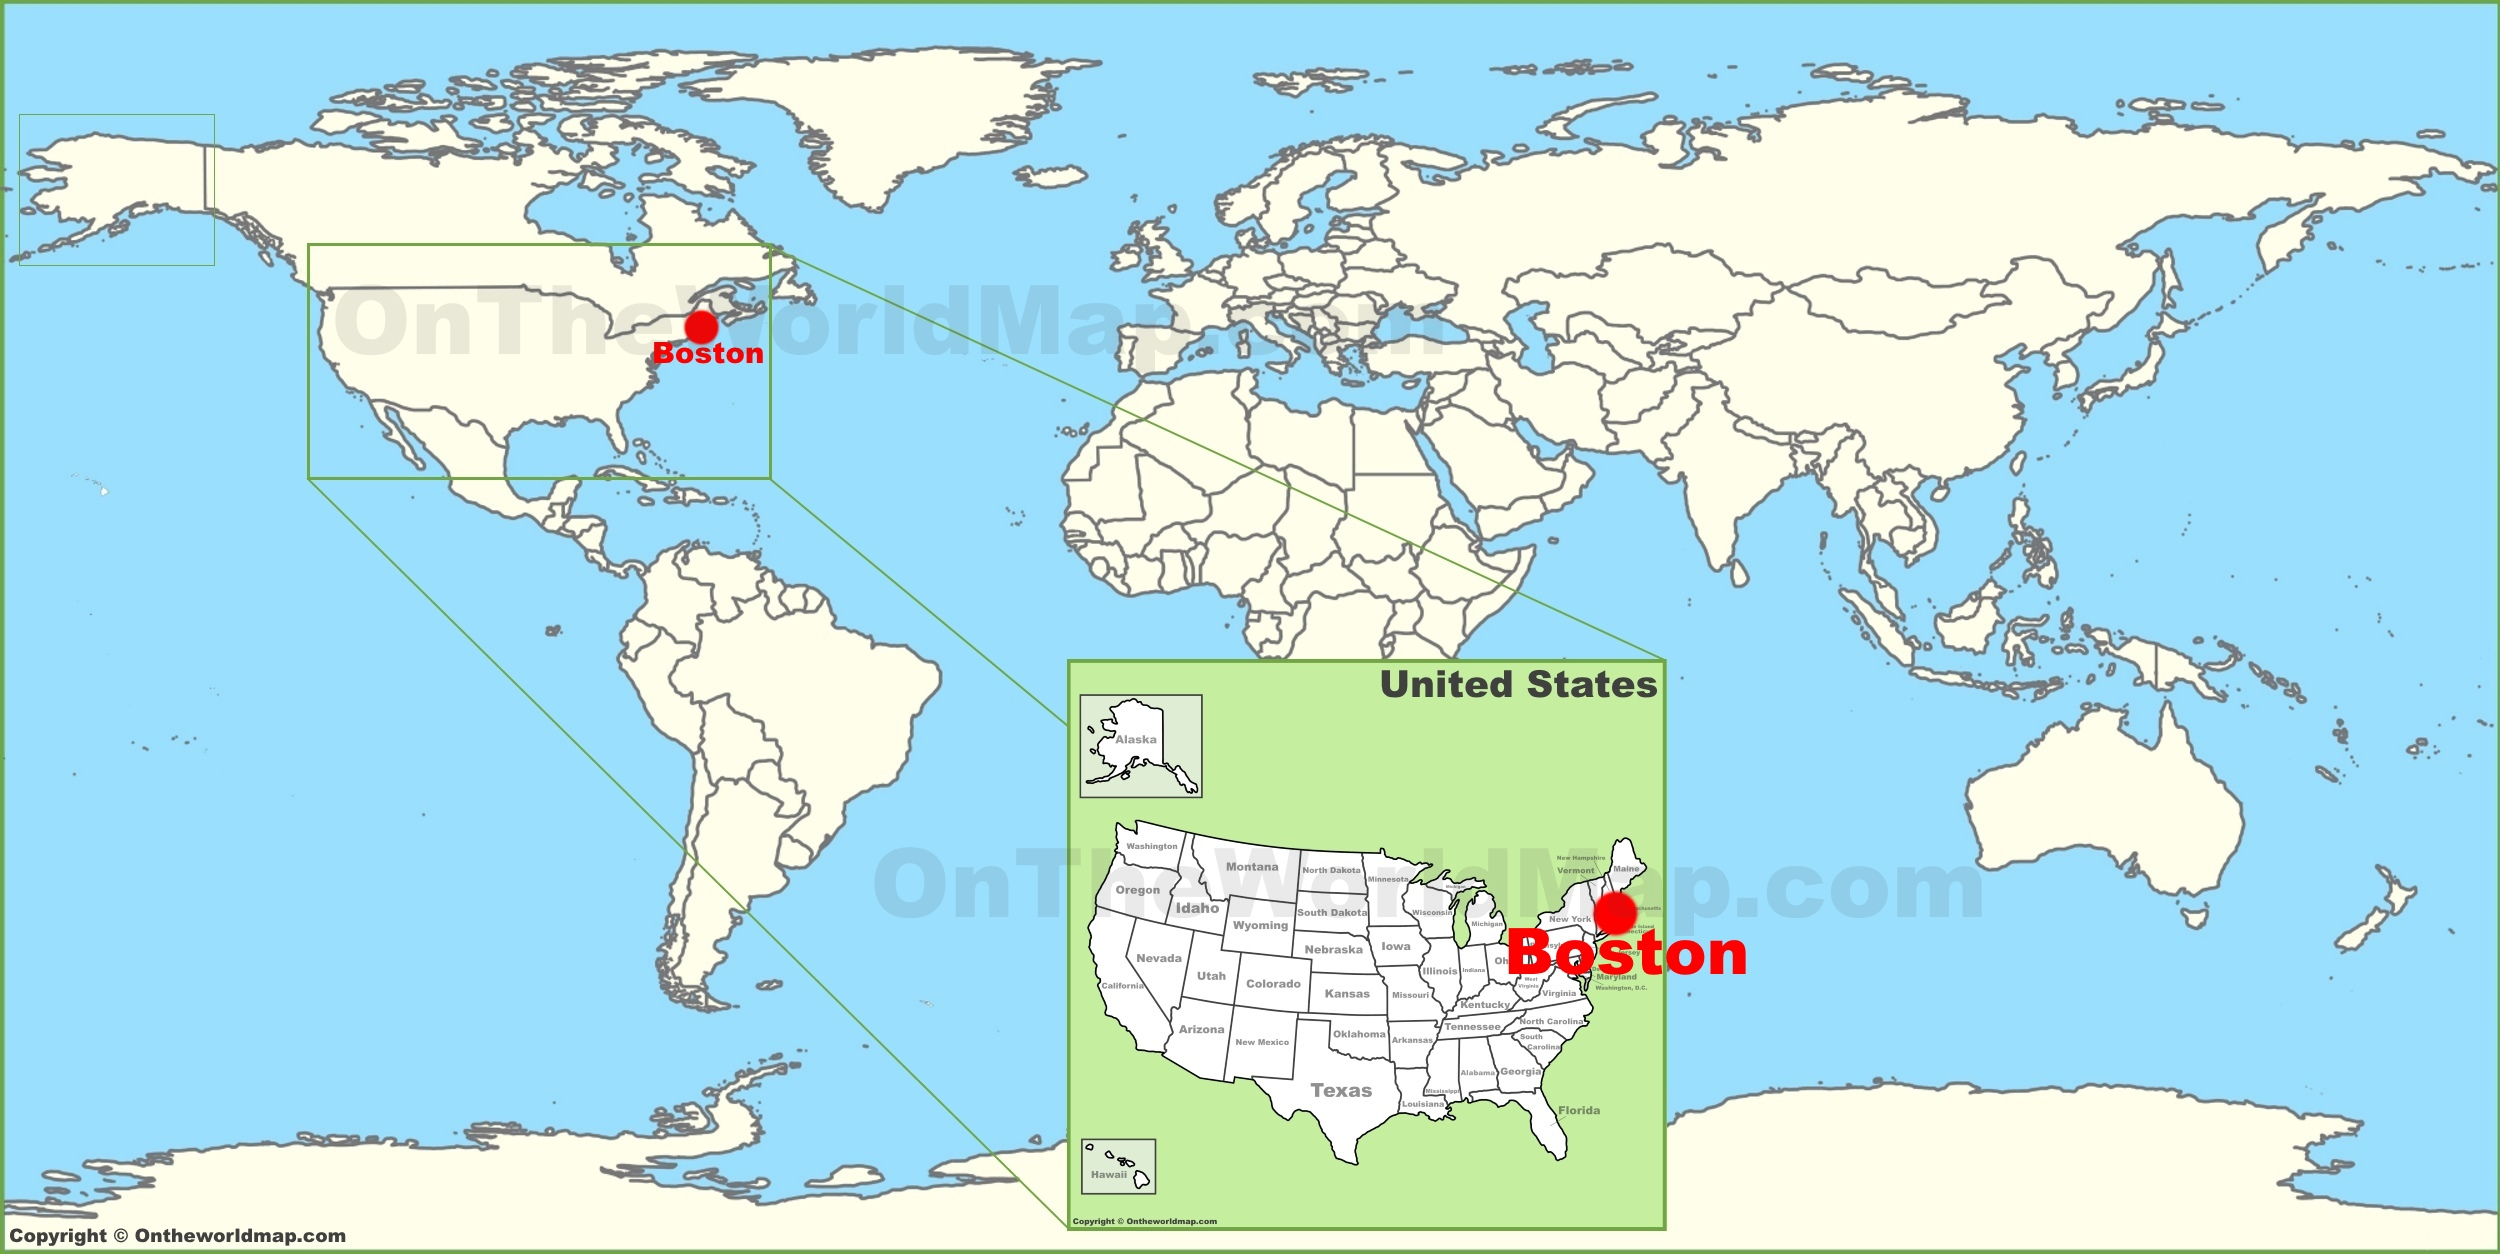 Boston on the World Map